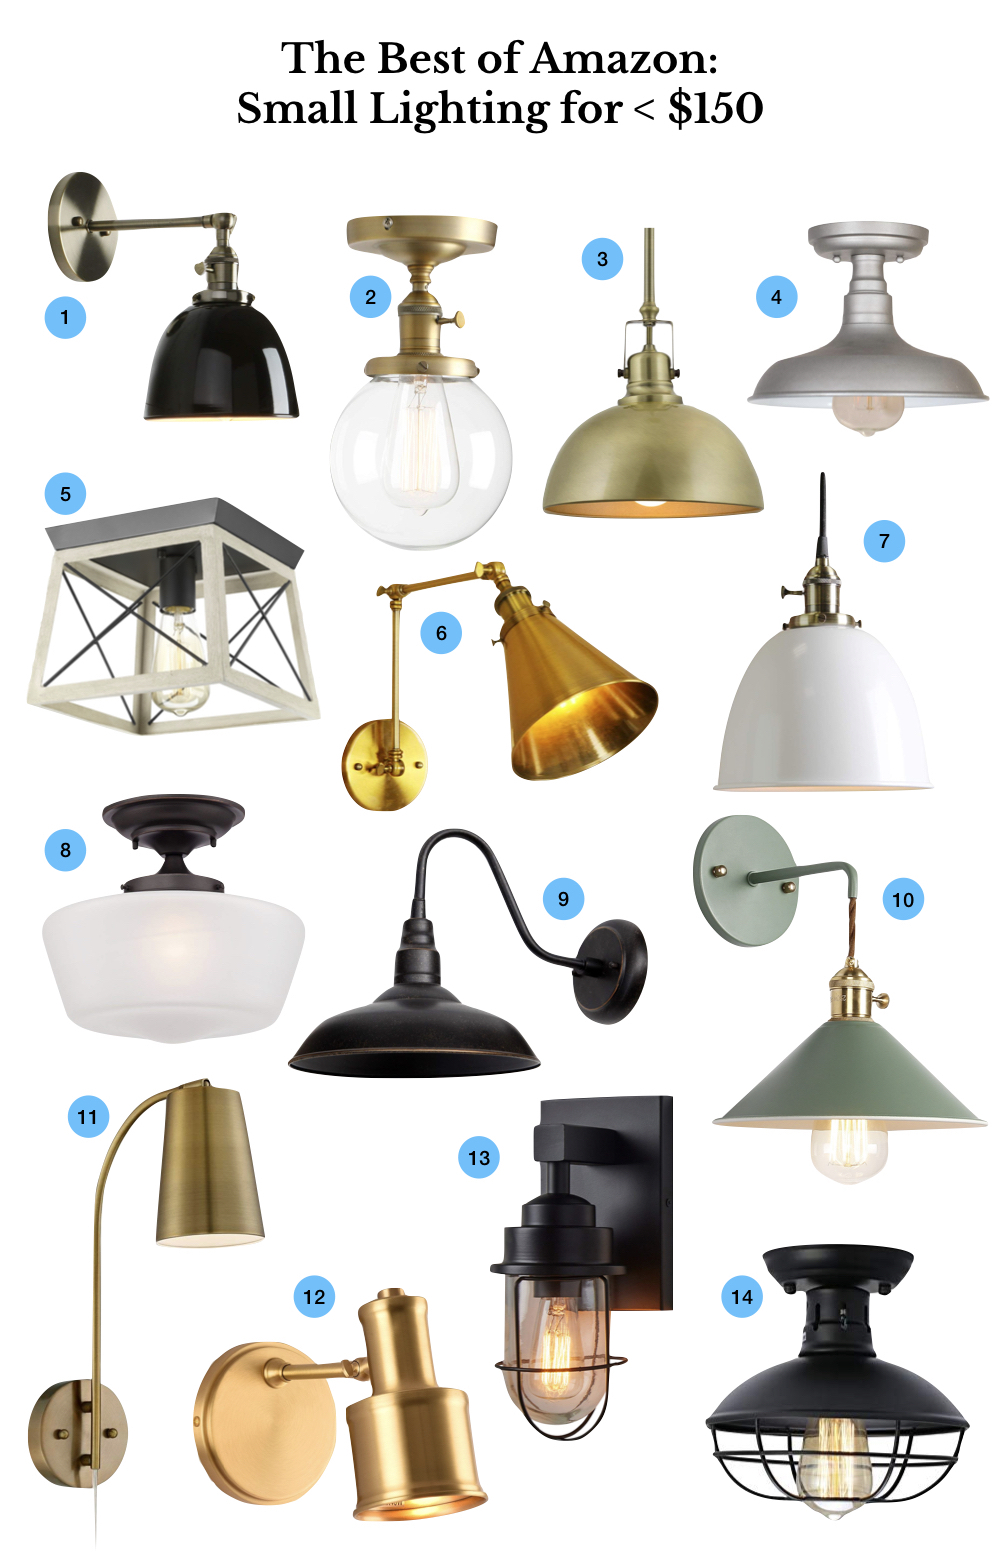 inexpensive, cheap lighting on Amazon. Stylish small lights. Budget wall sconces, pendant lights, semi flush mount lighting.